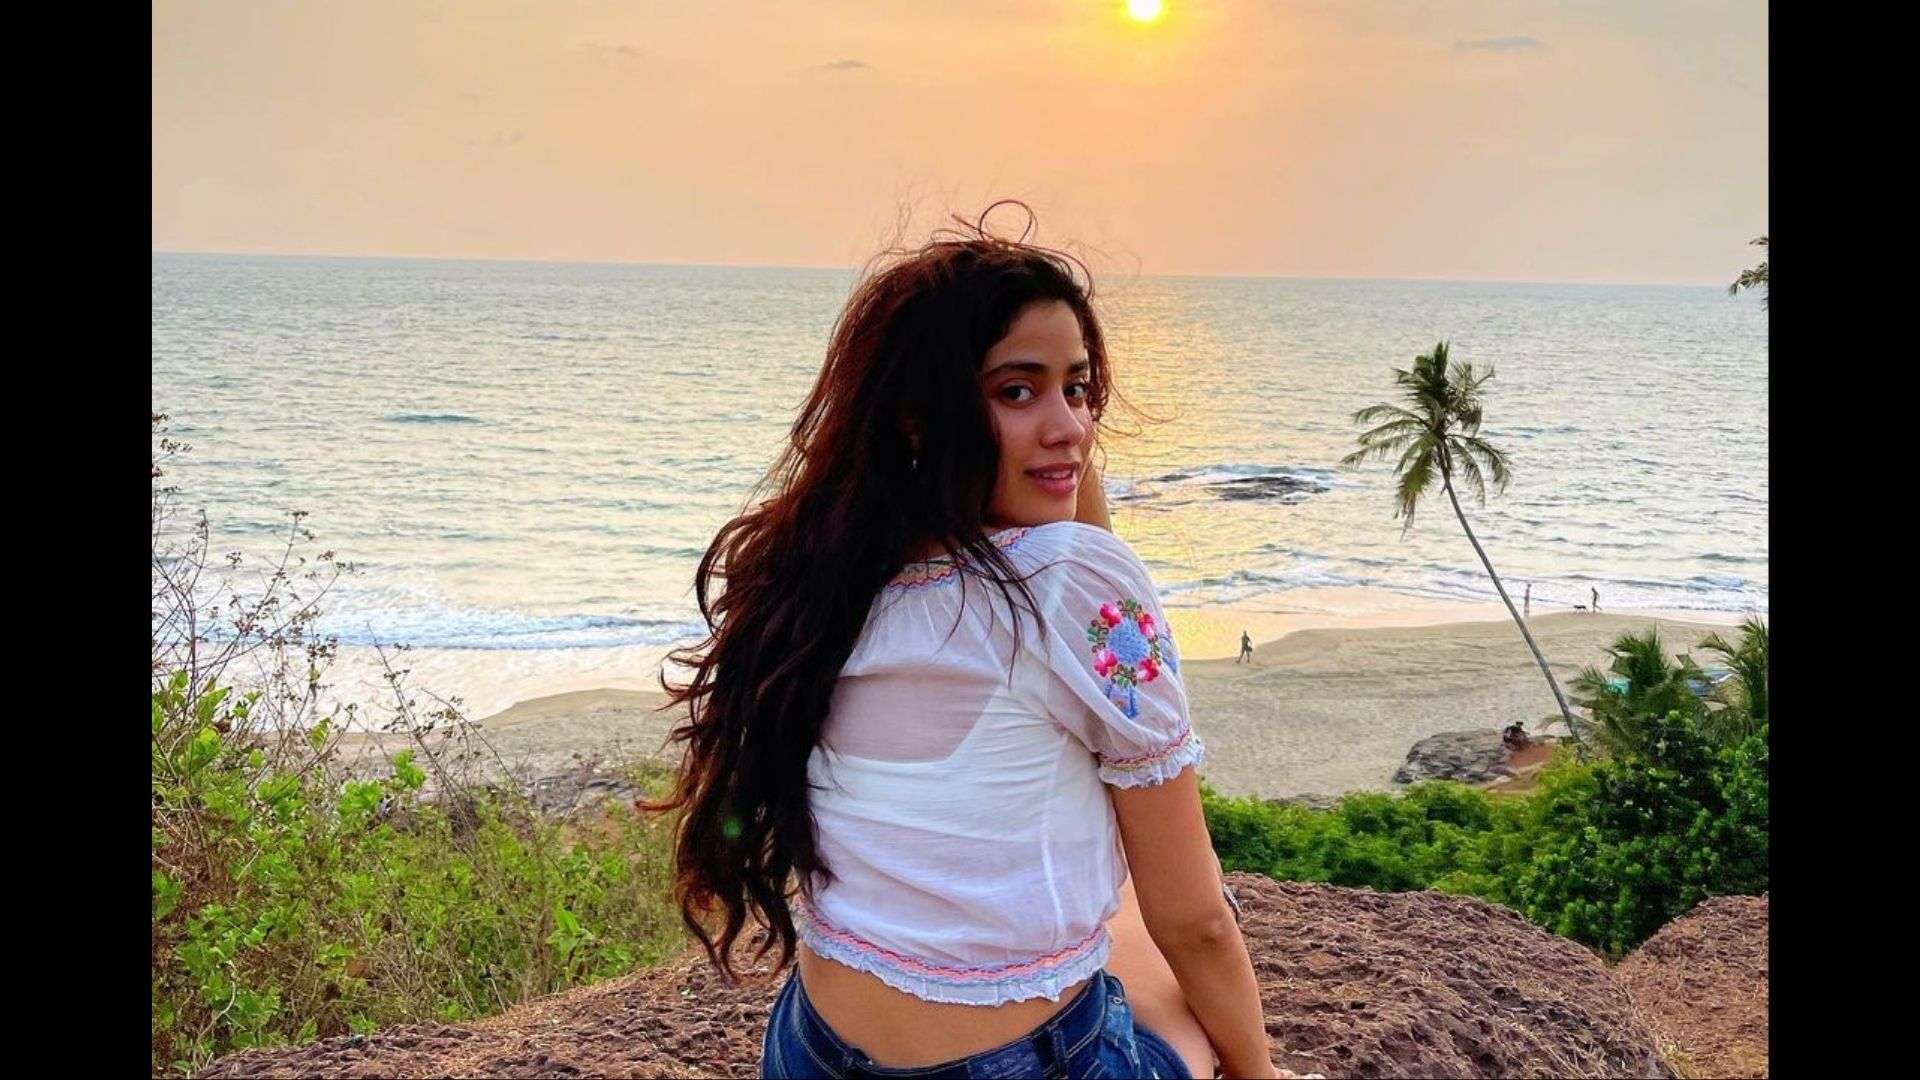 Janhvi Kapoor's Obsession With Bags Continue; A Bag She Donned For An Event Will Cost You An Arm And A Leg